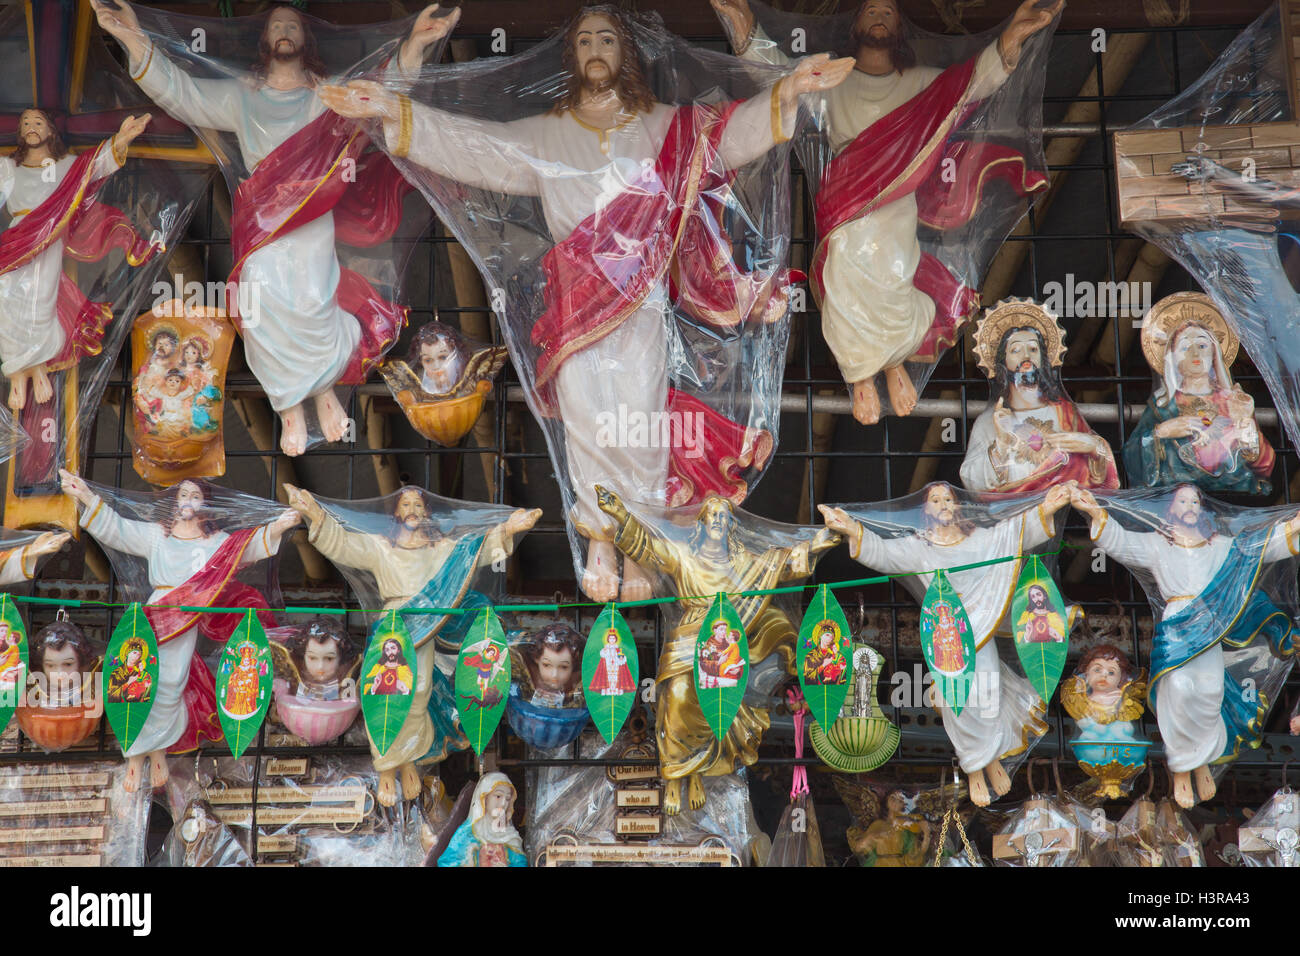 Models of Jesus - Stock Image